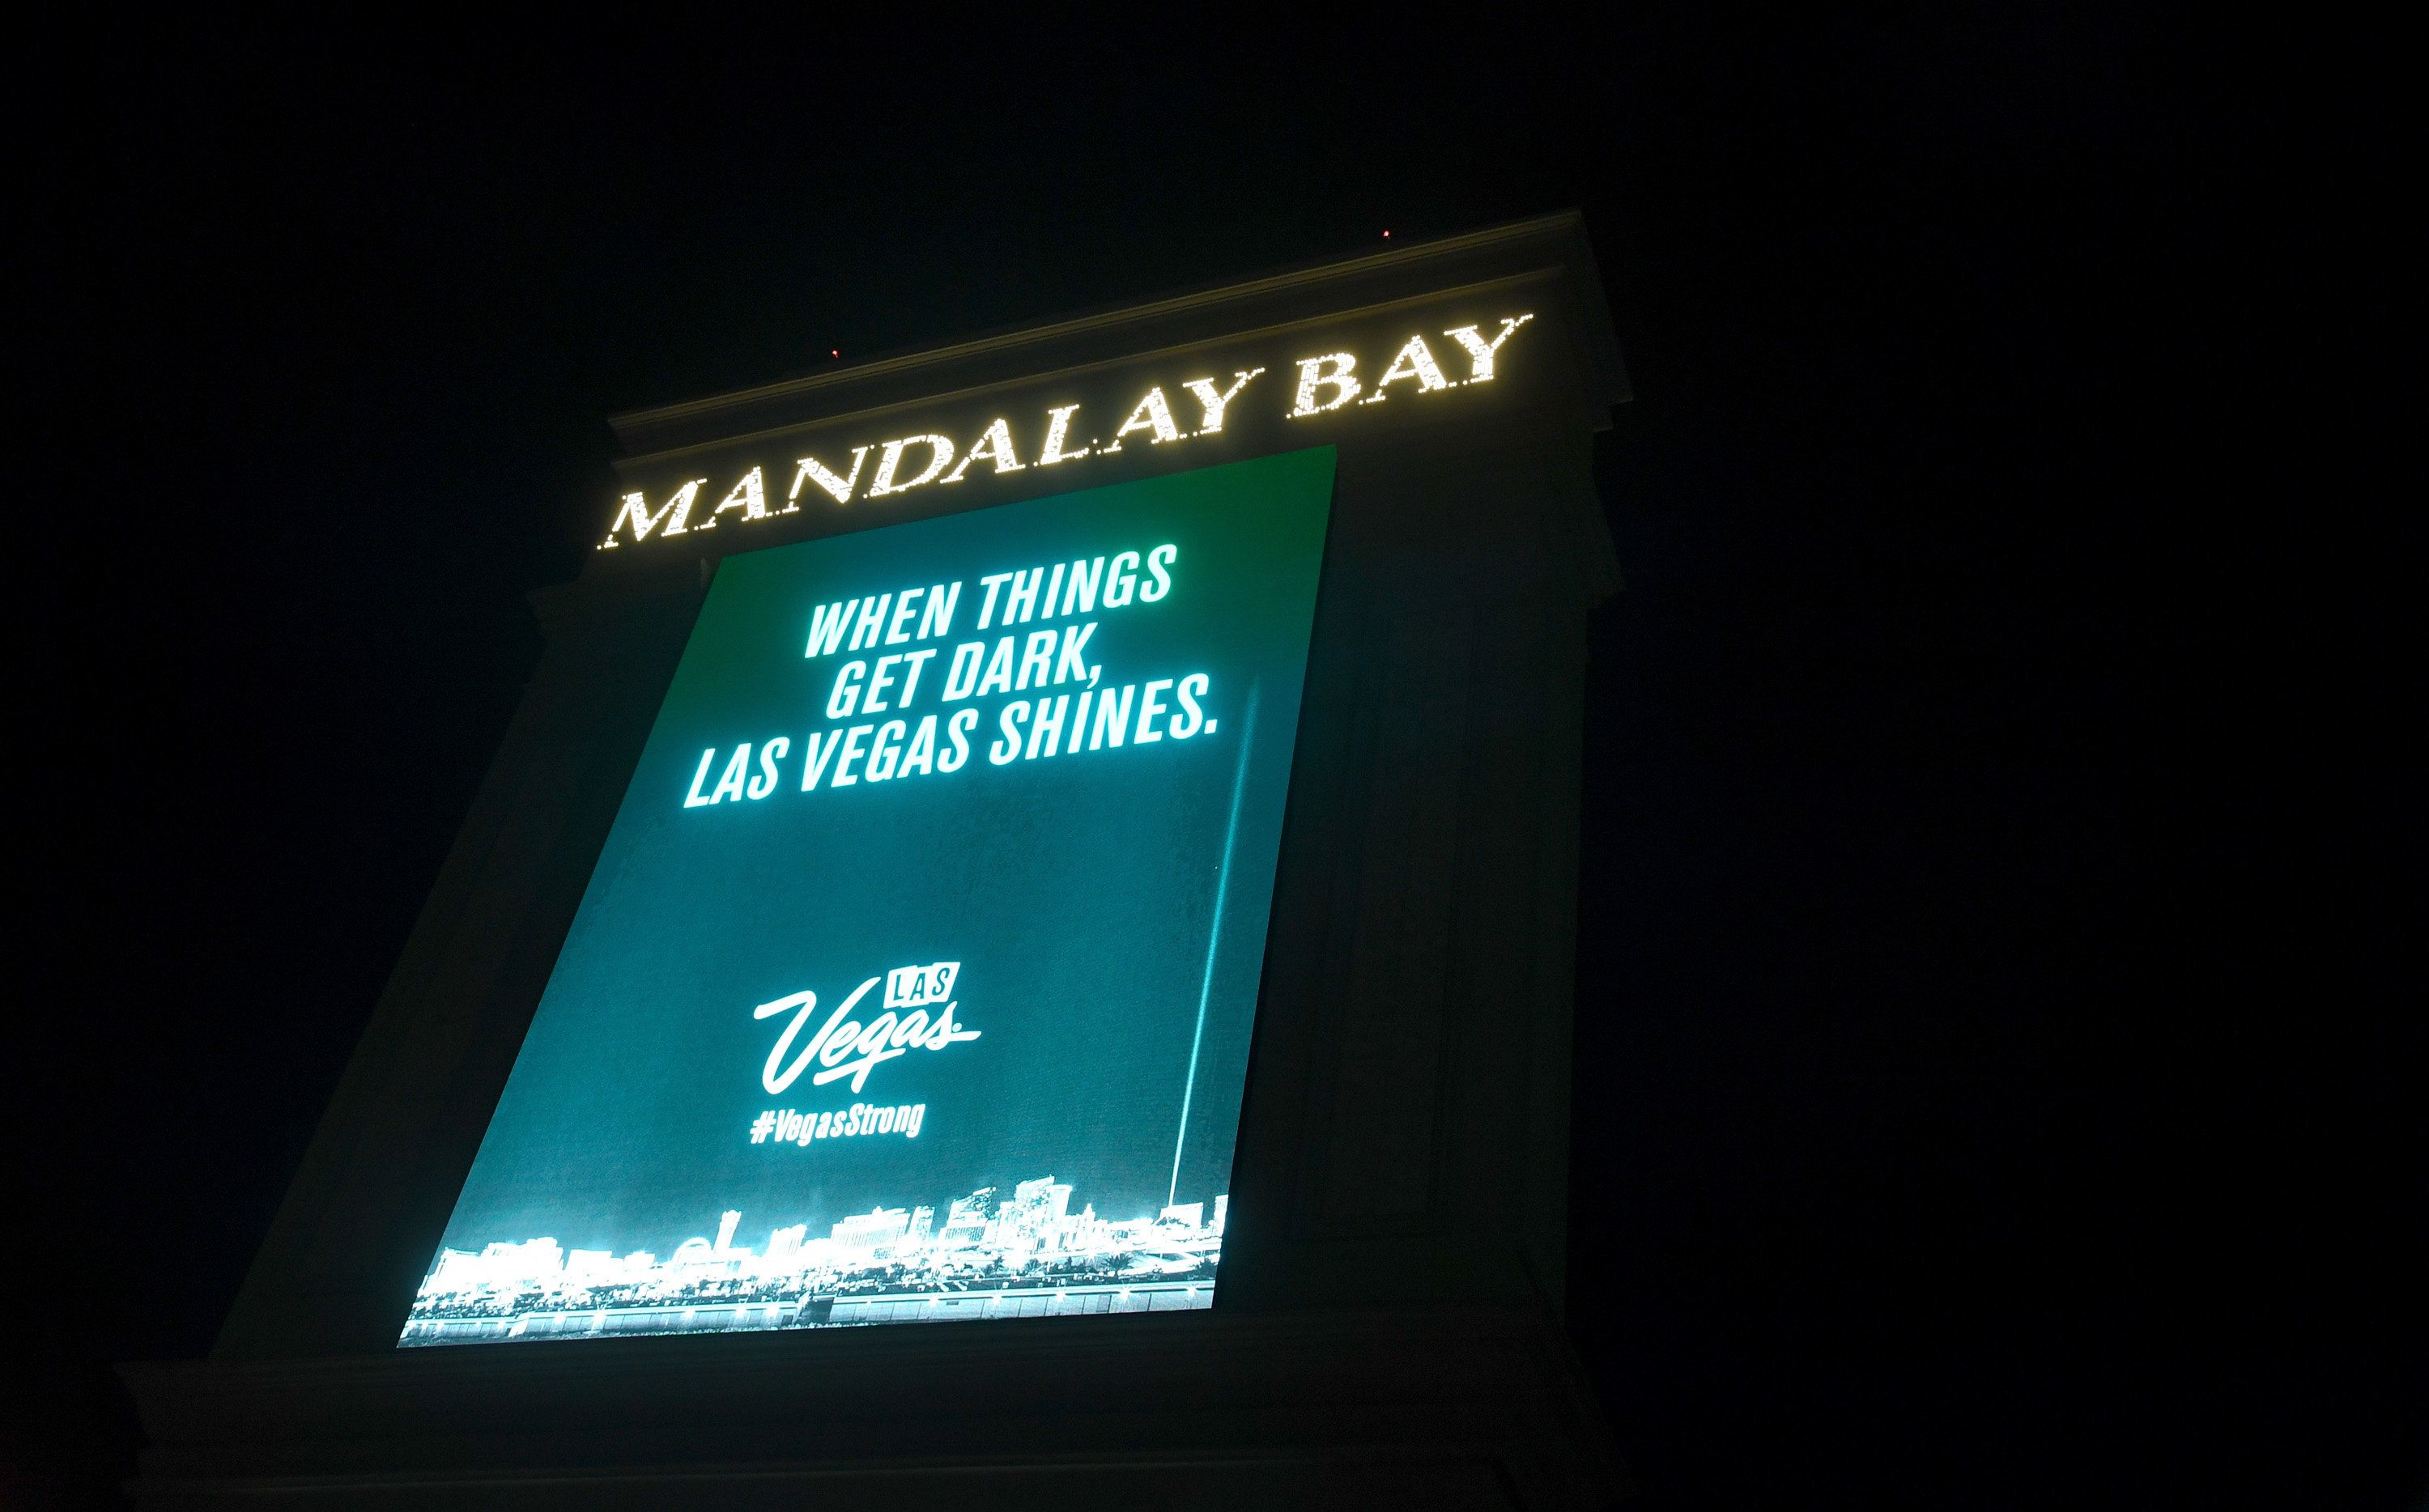 LAS VEGAS, NV - OCTOBER 08:  A marquee at Mandalay Bay Resort and Casino displays a message in tribute to the victims of last Sunday night's mass shooting on October 8, 2017 in Las Vegas, Nevada. The marquees at resorts all along the Las Vegas Strip displayed the message 'When things get dark, Las Vegas shines.' after they went dark at 10:05 p.m. for 11 minutes Sunday night, marking the time and duration one week ago of the shooting at the Route 91 Harvest country music festival. Stephen Paddock killed 58 people and injured more than 450 when he opened fire on the crowd from the 32nd floor of Mandalay Bay. The massacre is one of the deadliest mass shooting events in U.S. history.  (Photo by Ethan Miller/Getty Images)